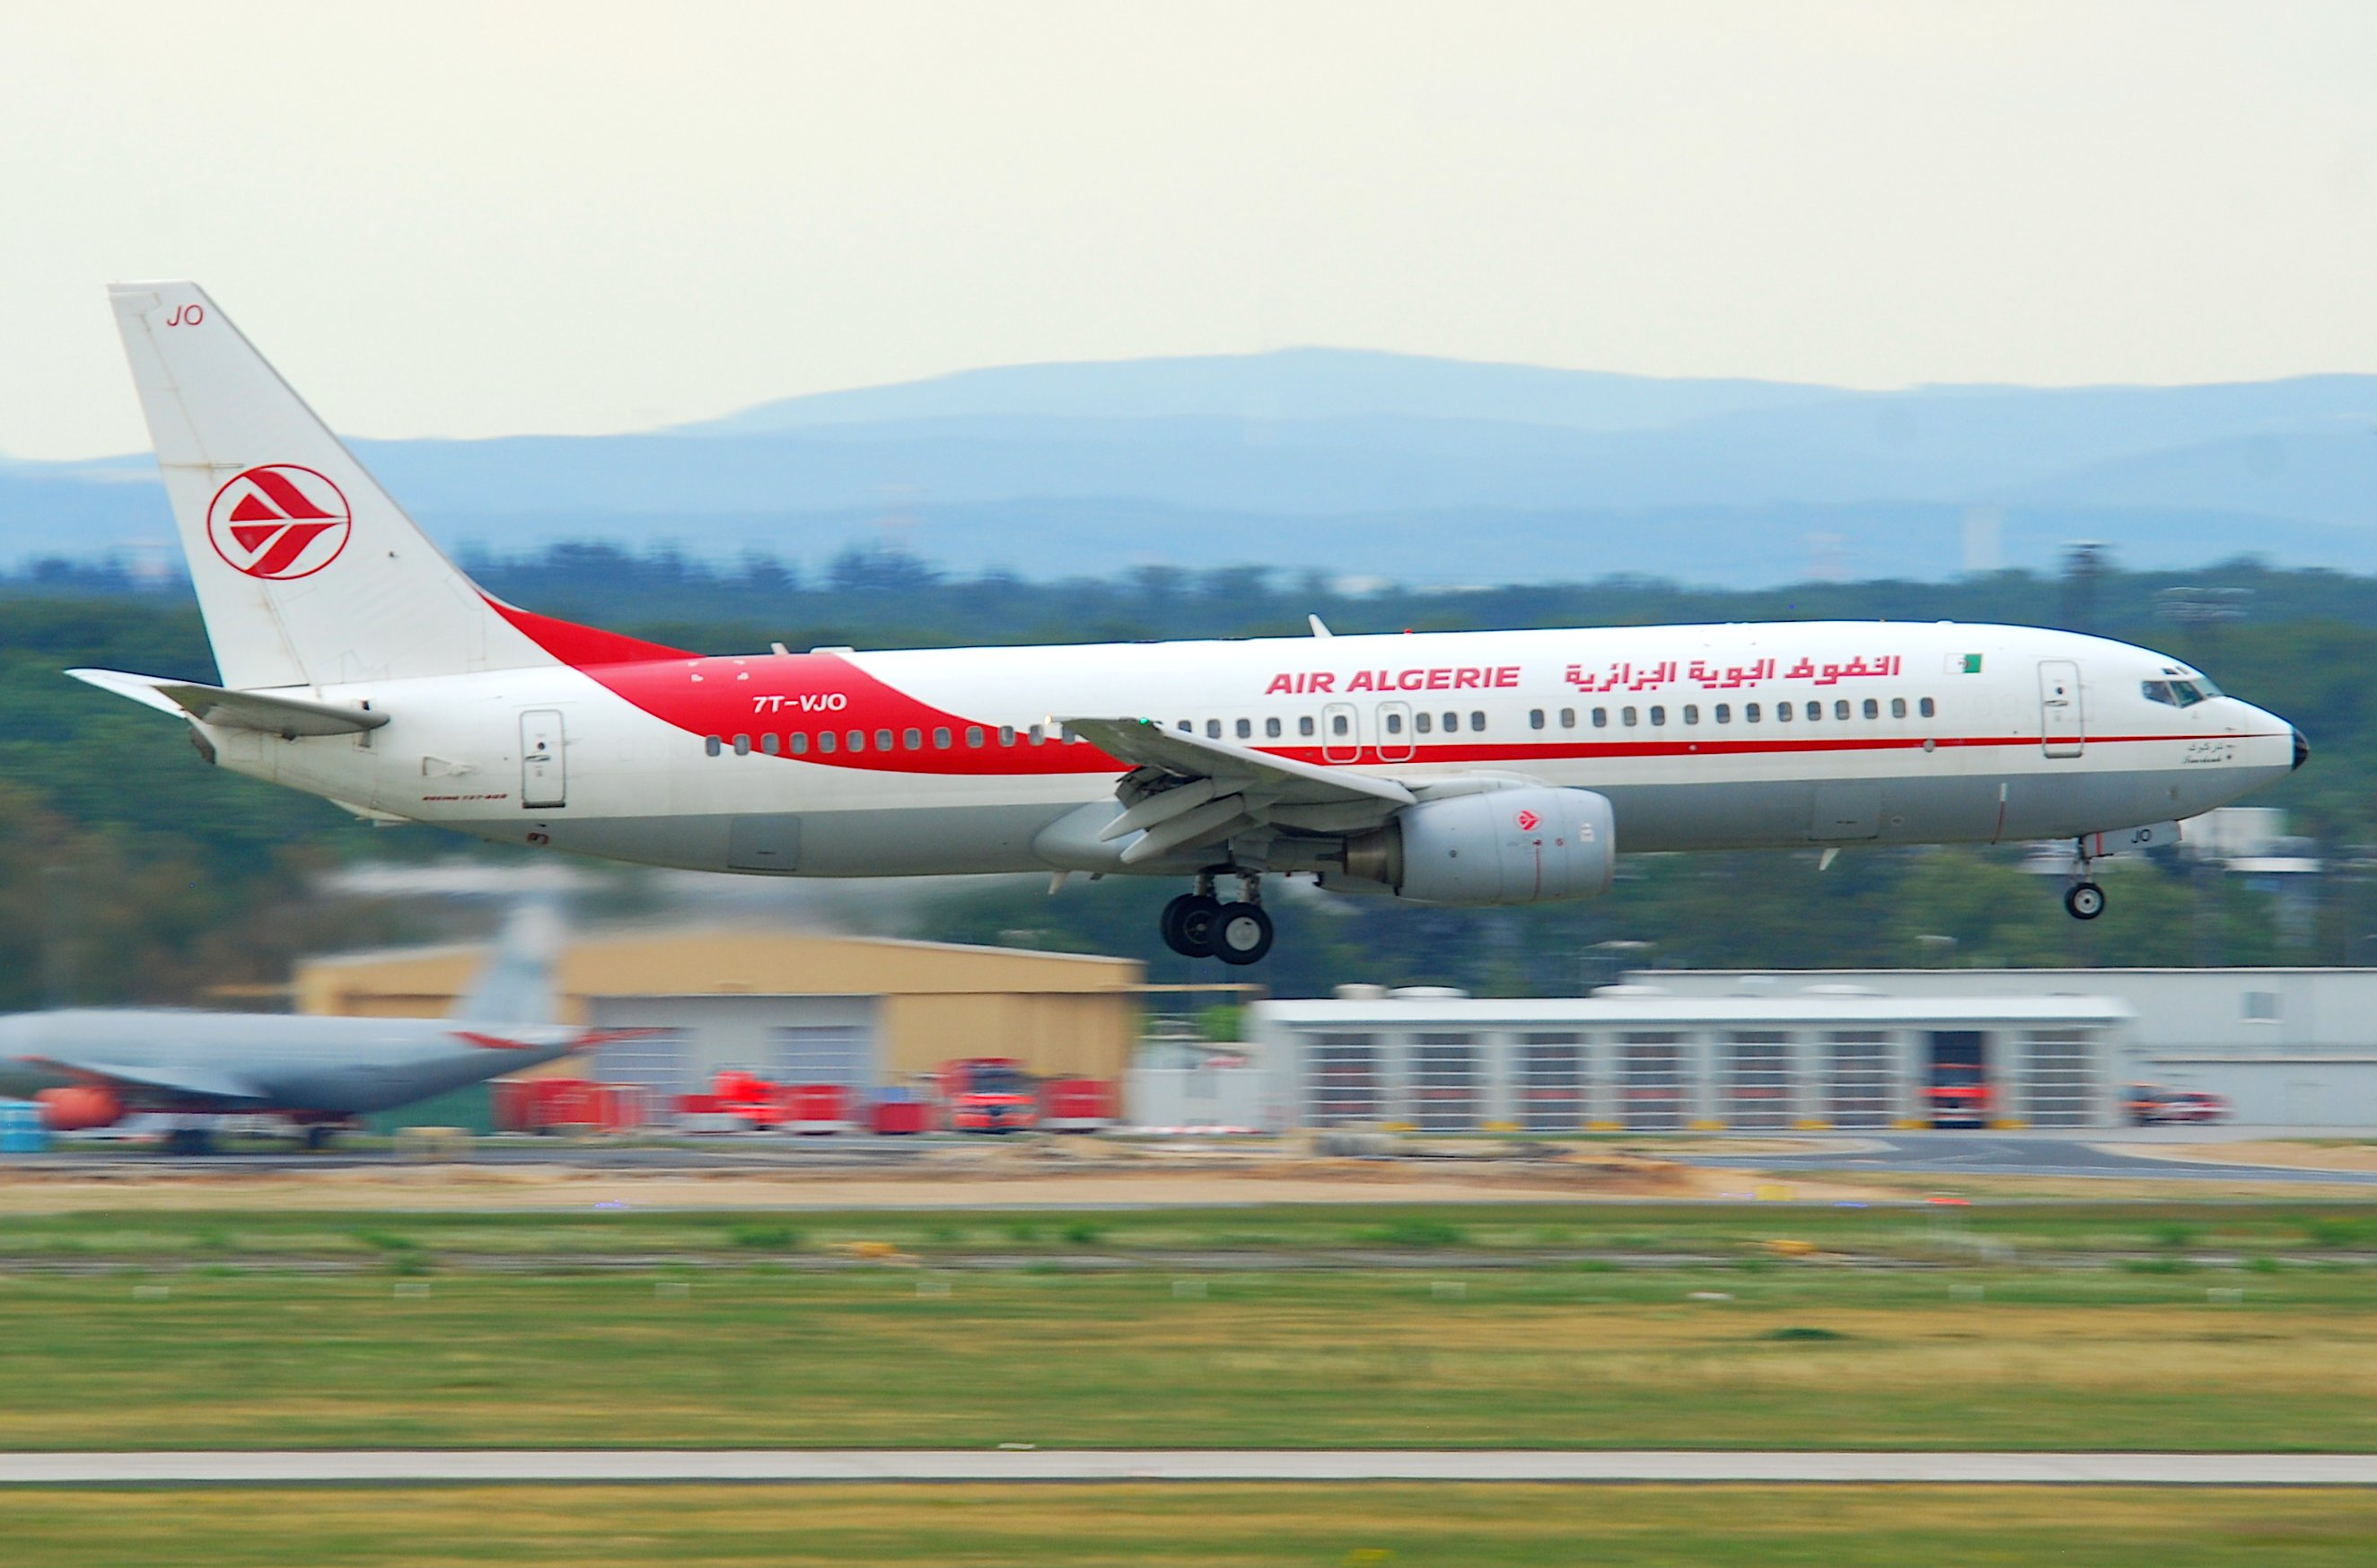 BREAKING: Flight Disappears From Radar After Declaring Mid Air Emergency plane2